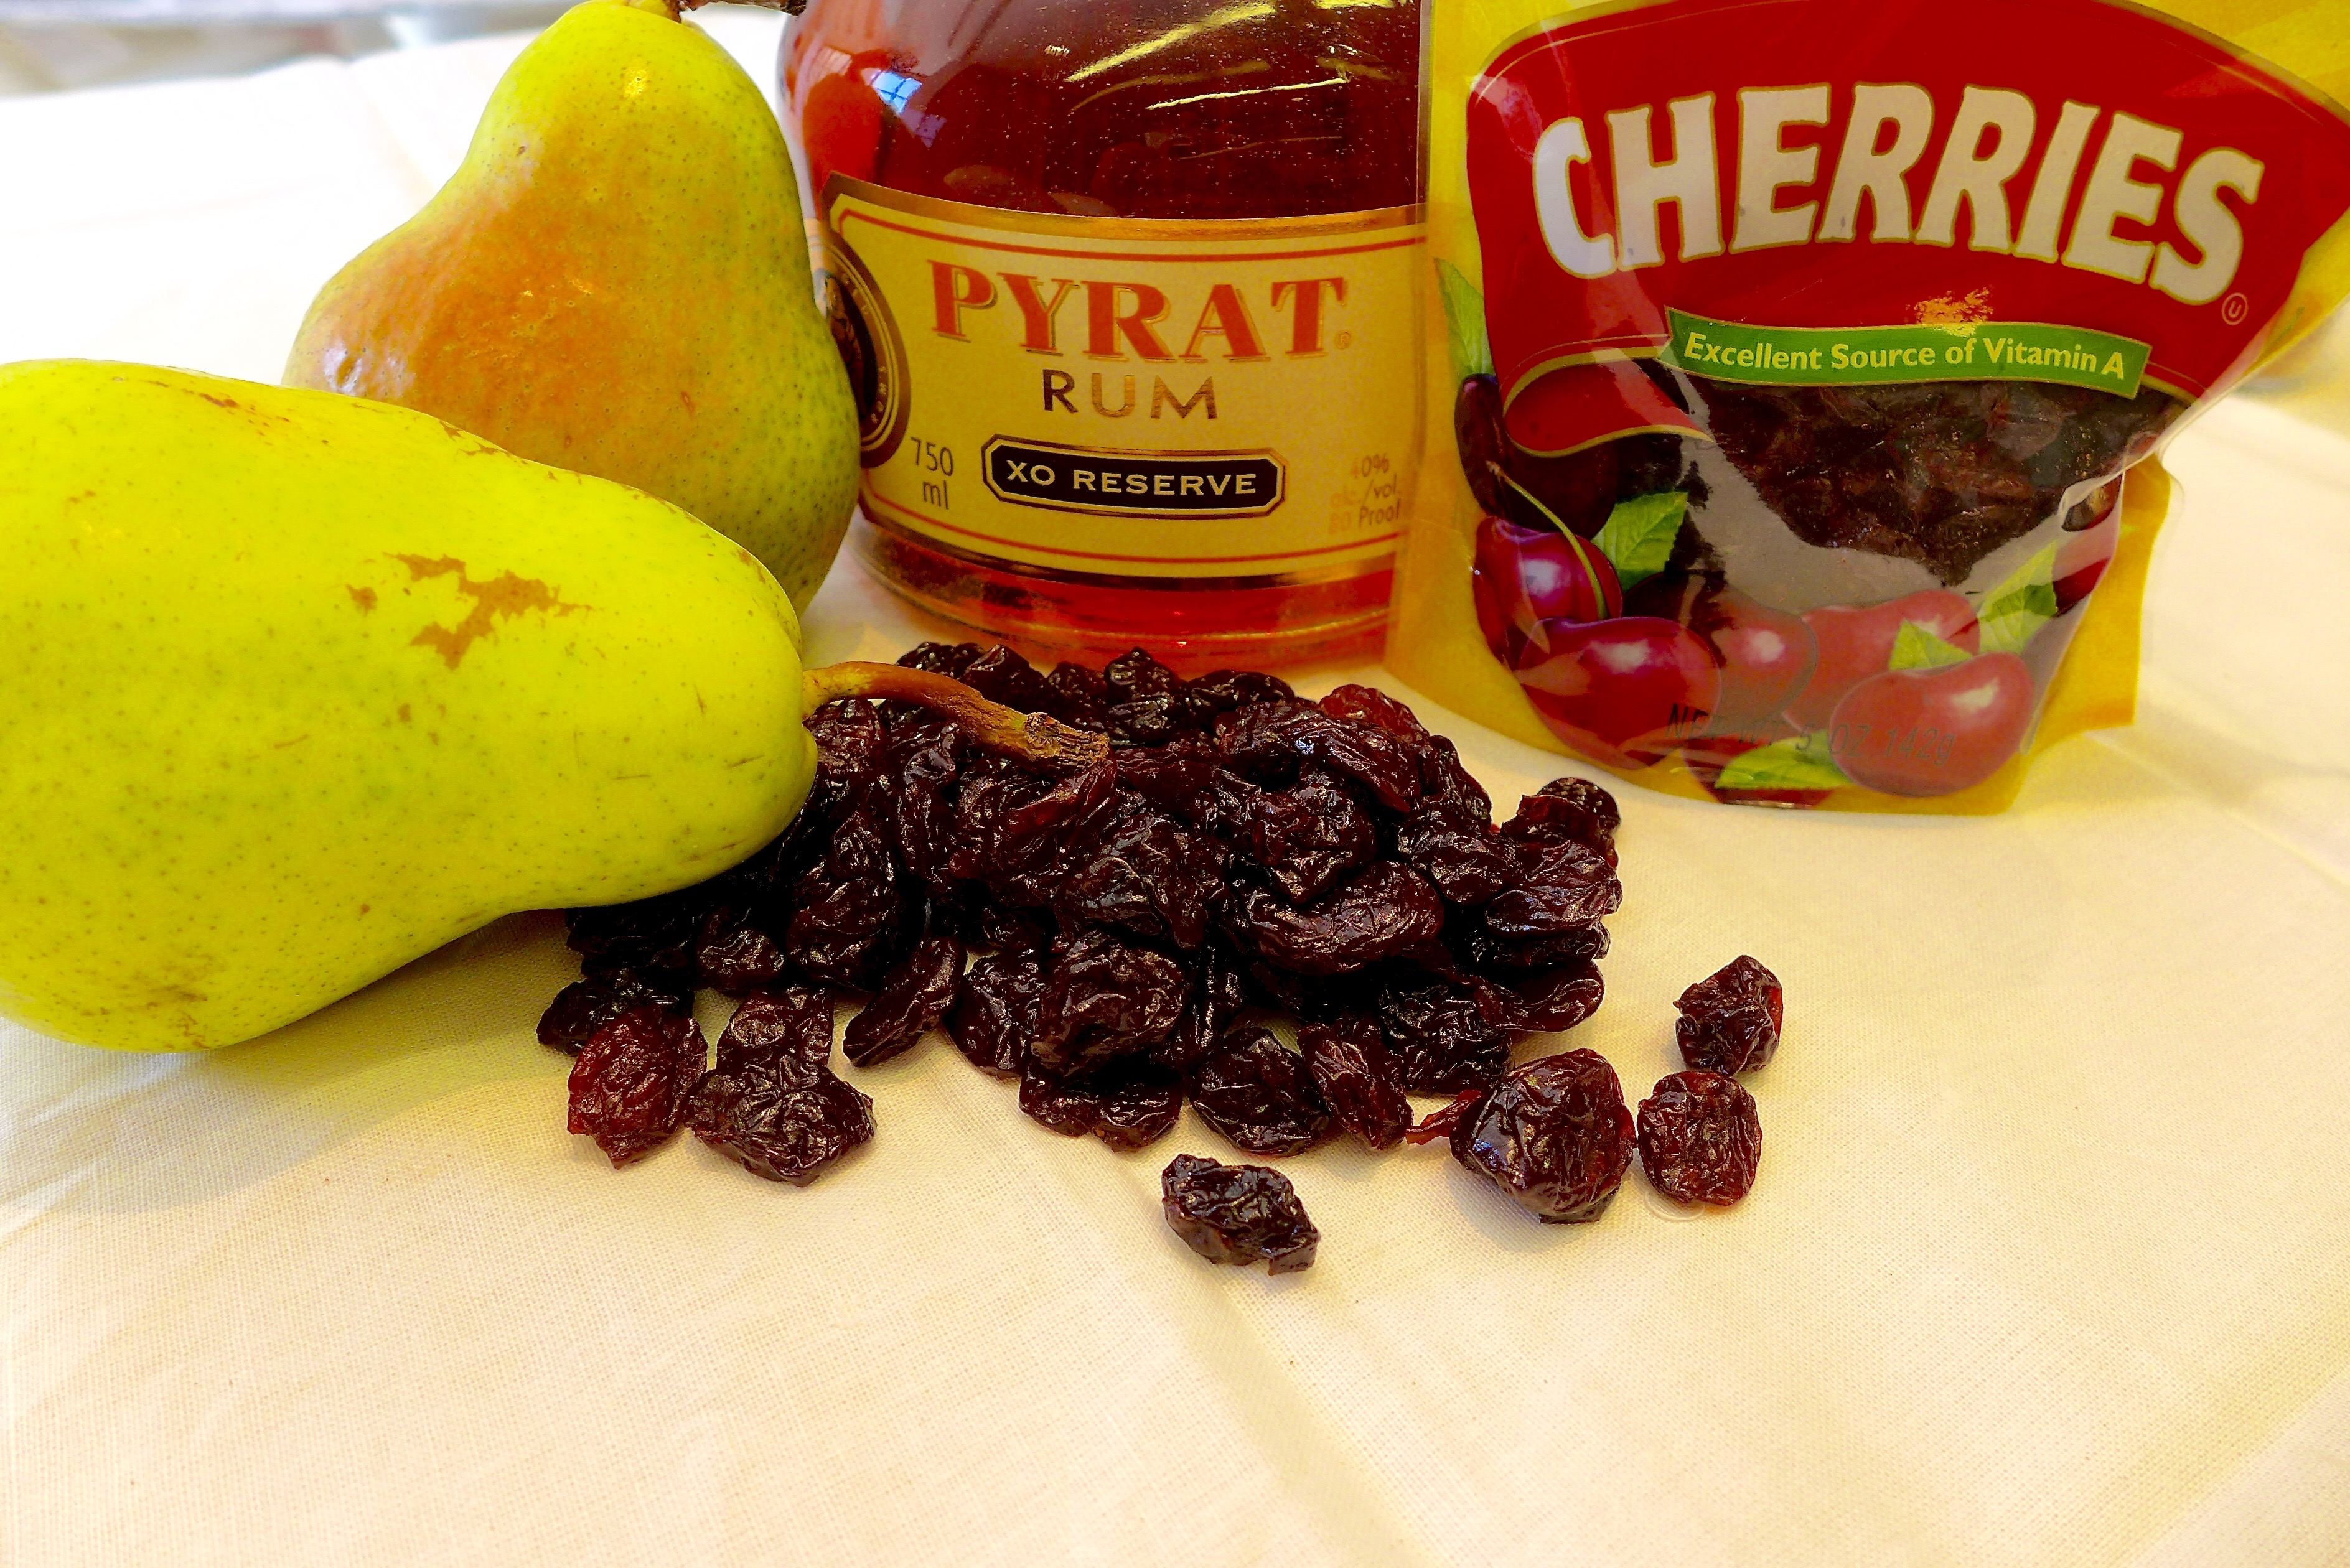 Pears, Dried Cherries and Rum